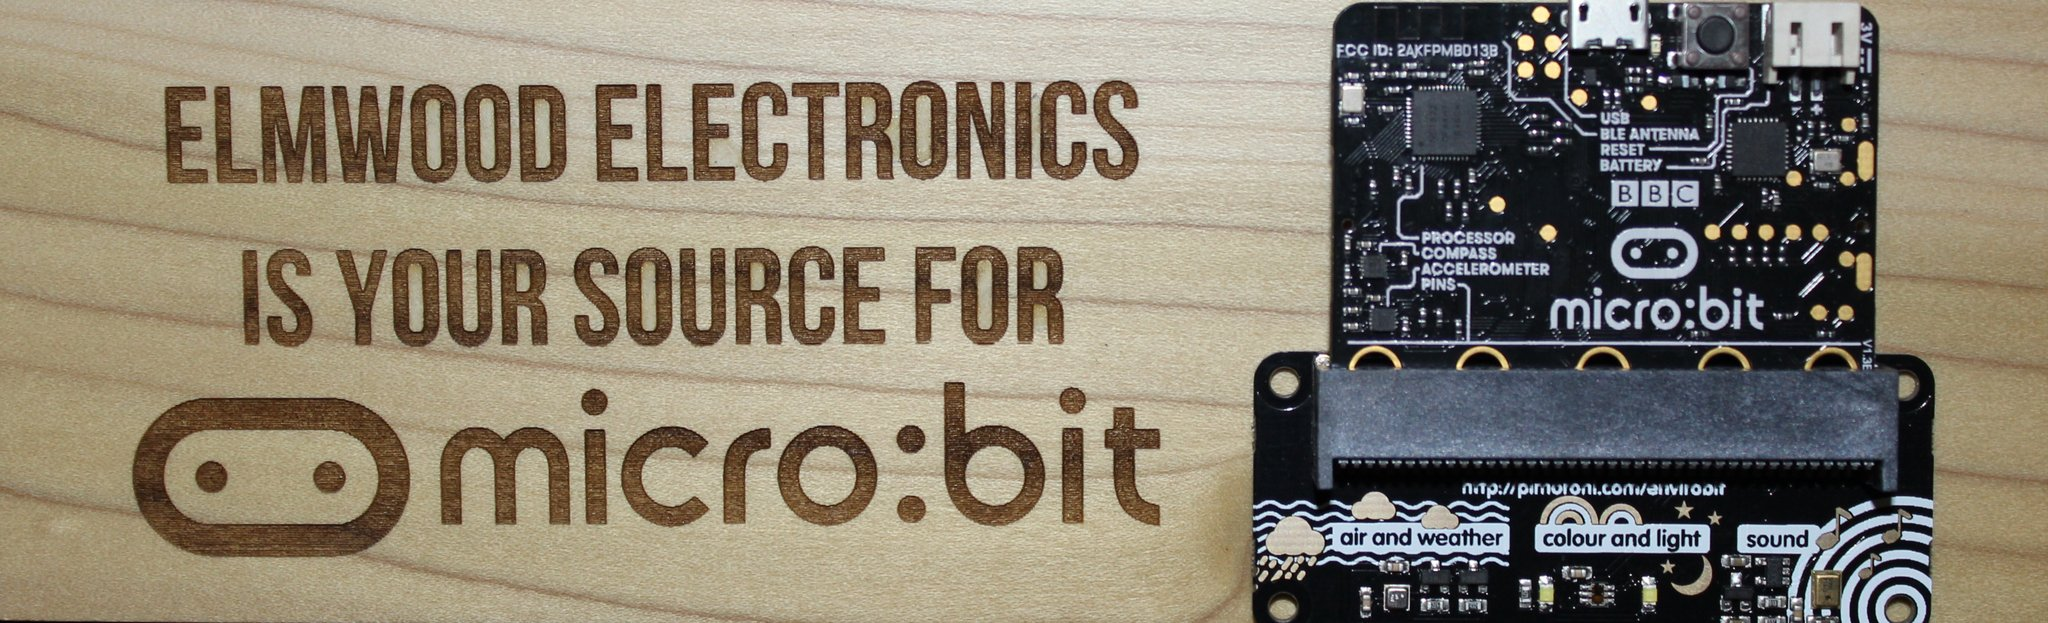 micro:bit at Elmwood Electronics